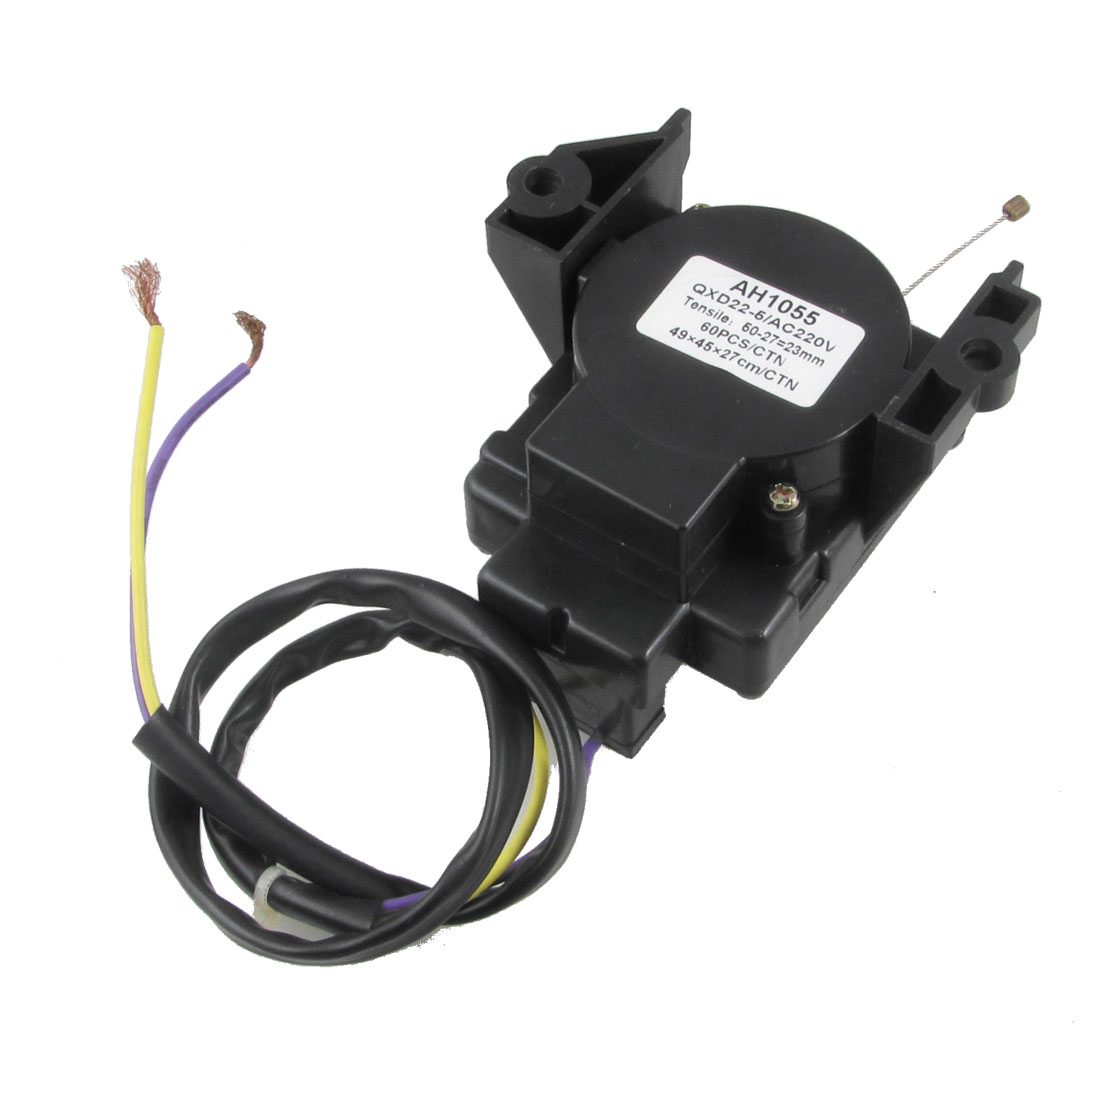 Repair Part Drain Motor Tractor AC 220V for Panasonic Washing Machine